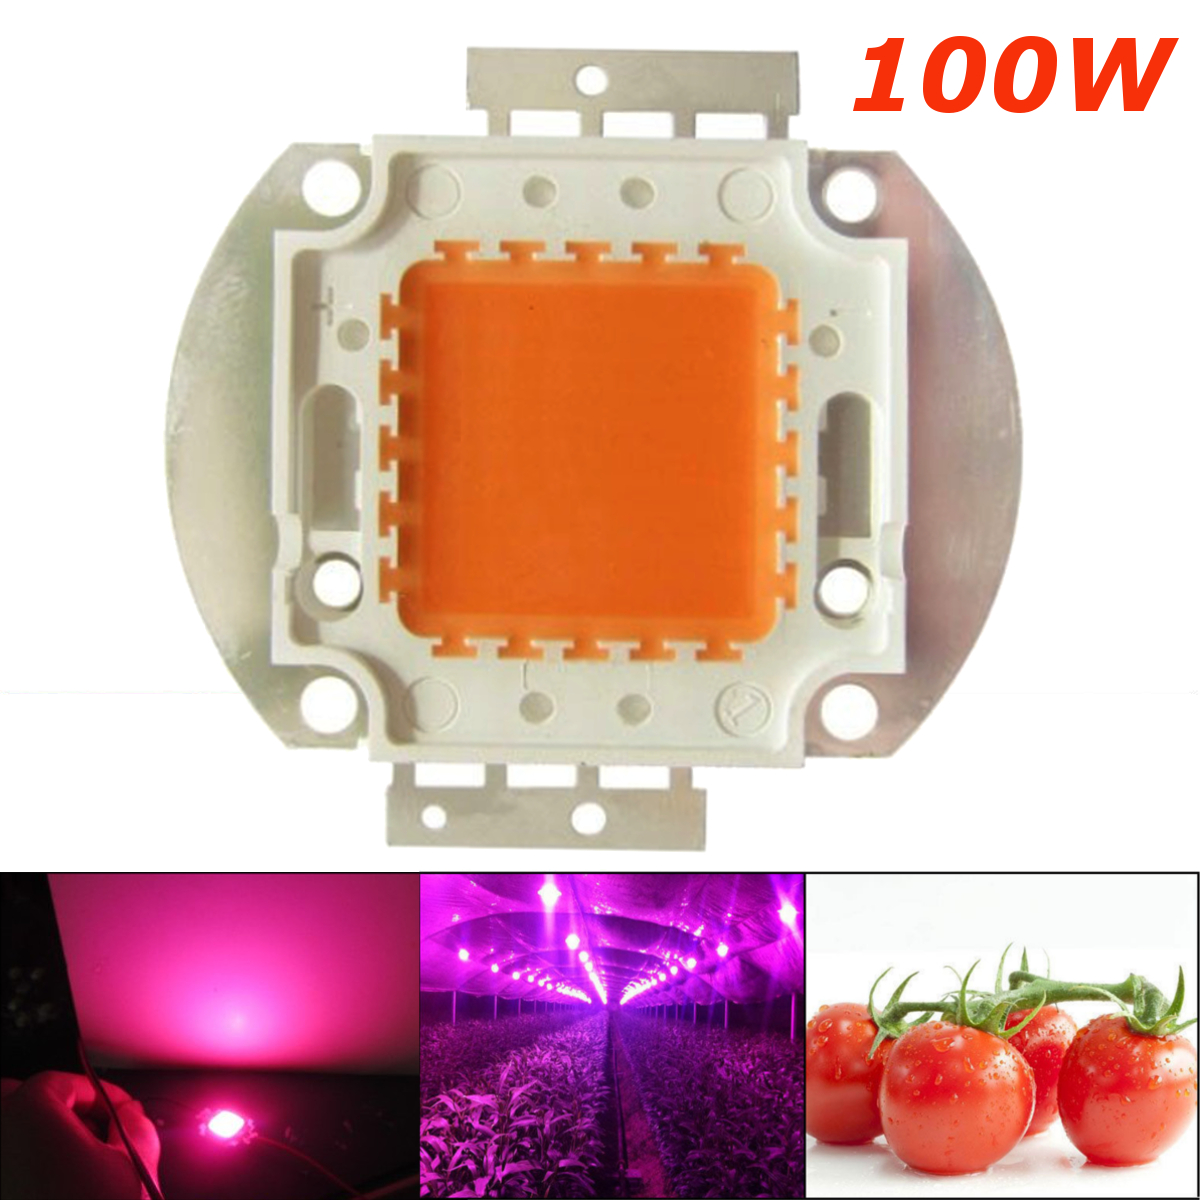 Jiguoor High Power LED Chip Full Spectrum Grow Light Lamp 100W 380nm - 840nm COB Beads For Indoor Plant Growth 1PCS